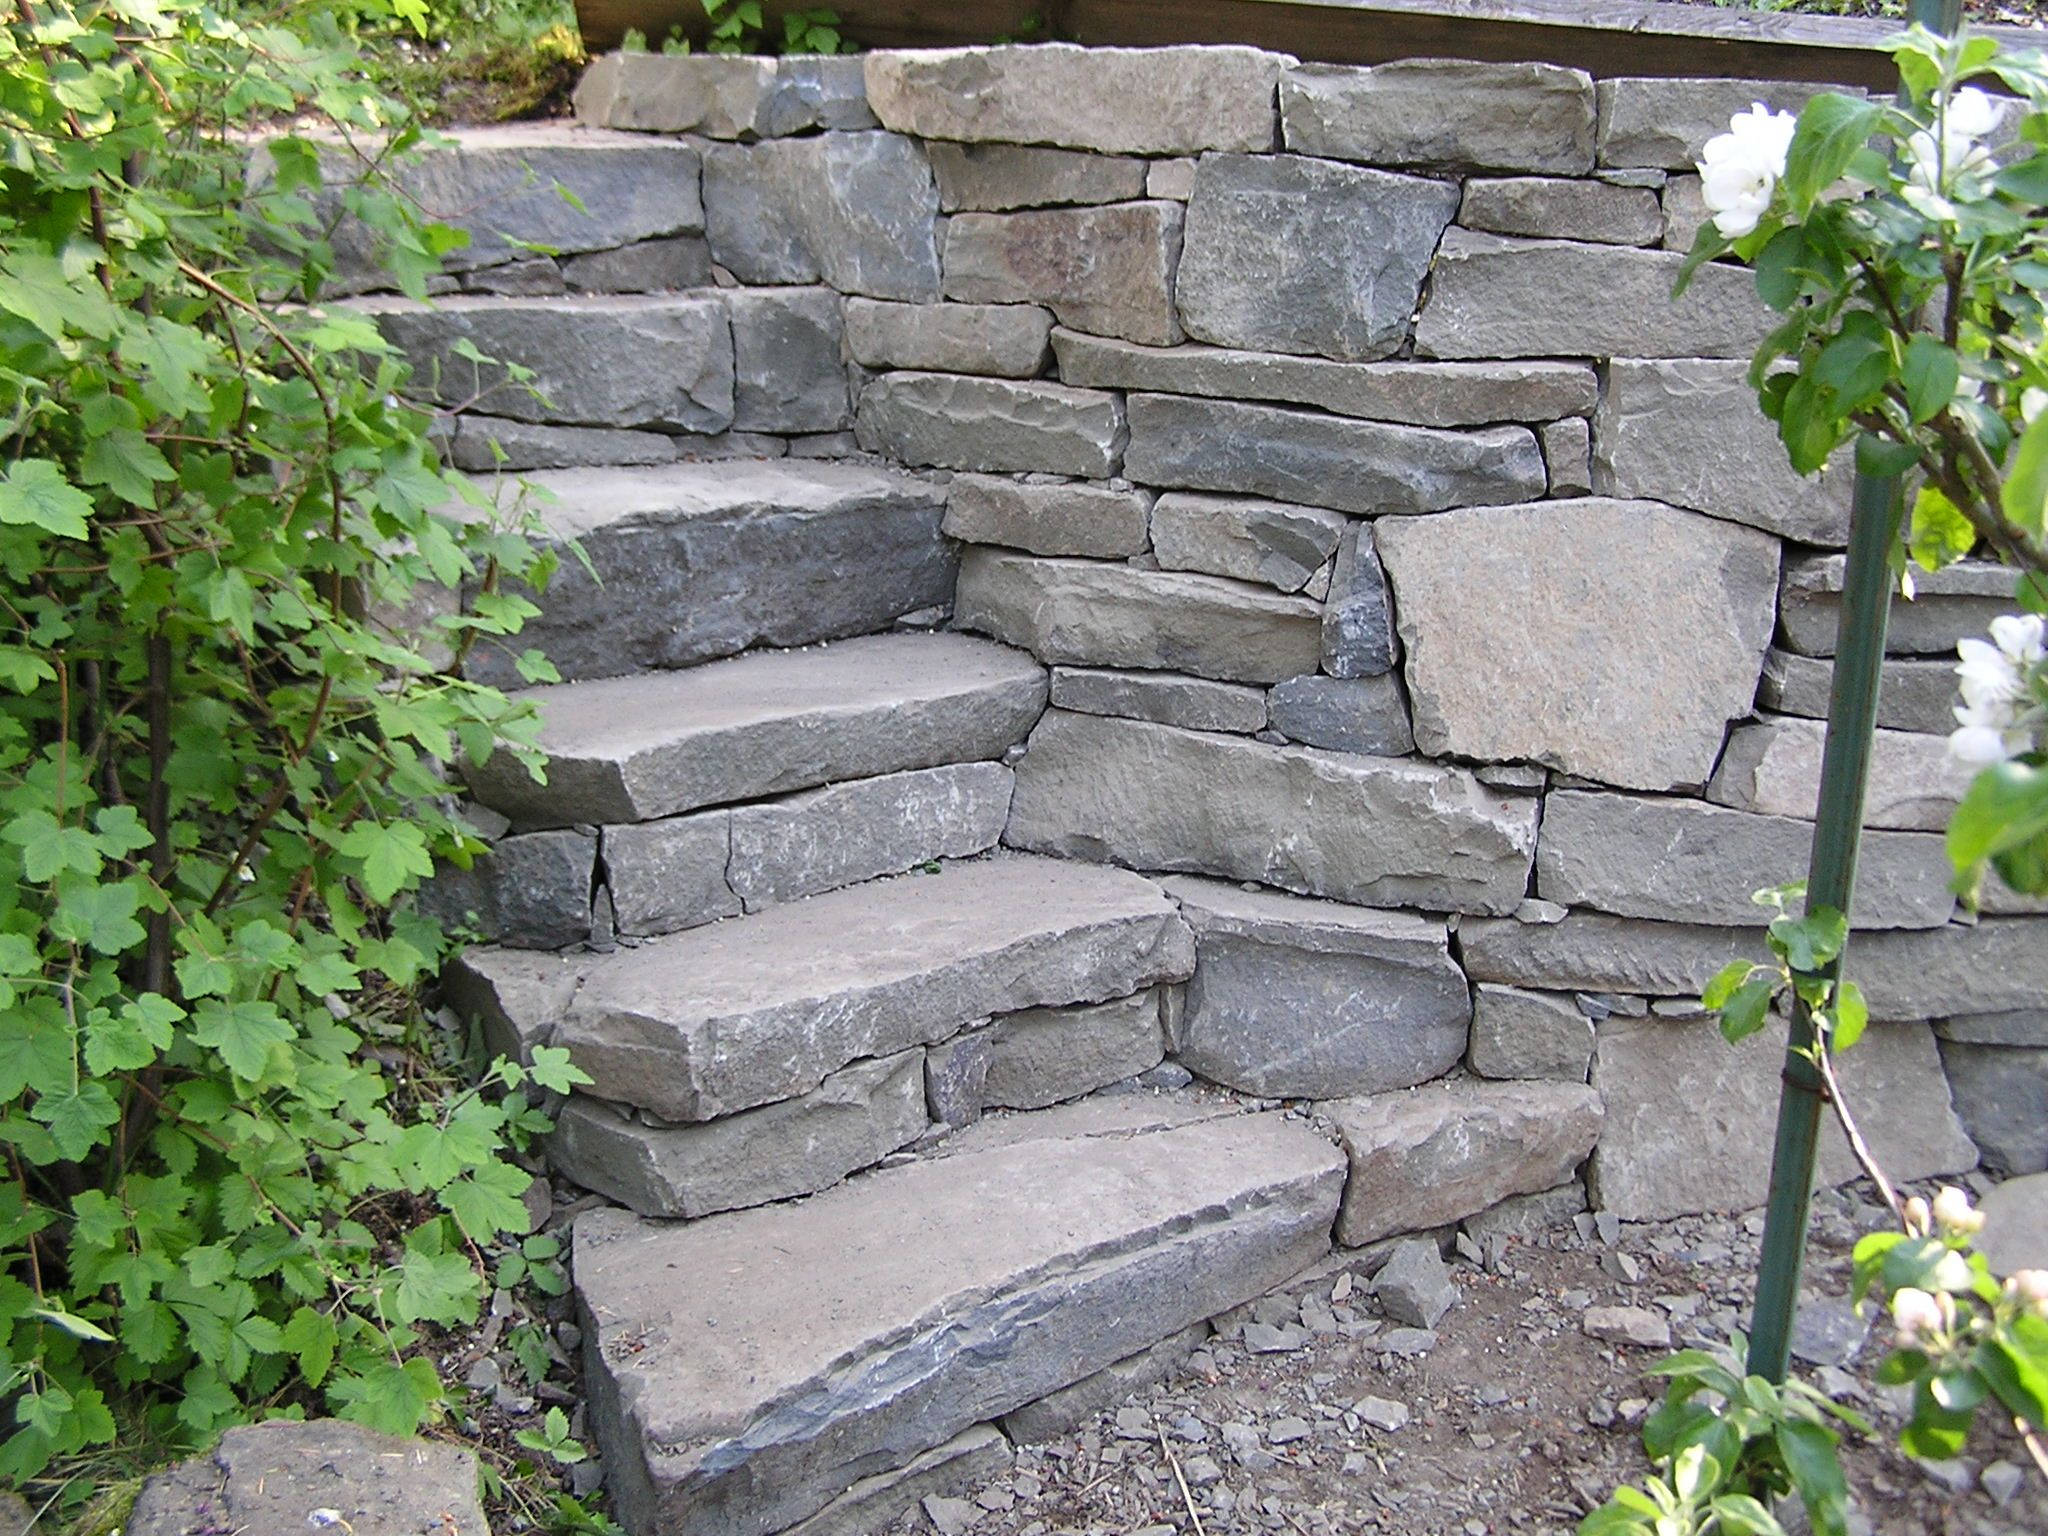 The natural stone steps of a stairway garden feature climb a small - Garden Steps Garden Bed Above The Existing Garden Into A Stoney Hillside The Steps